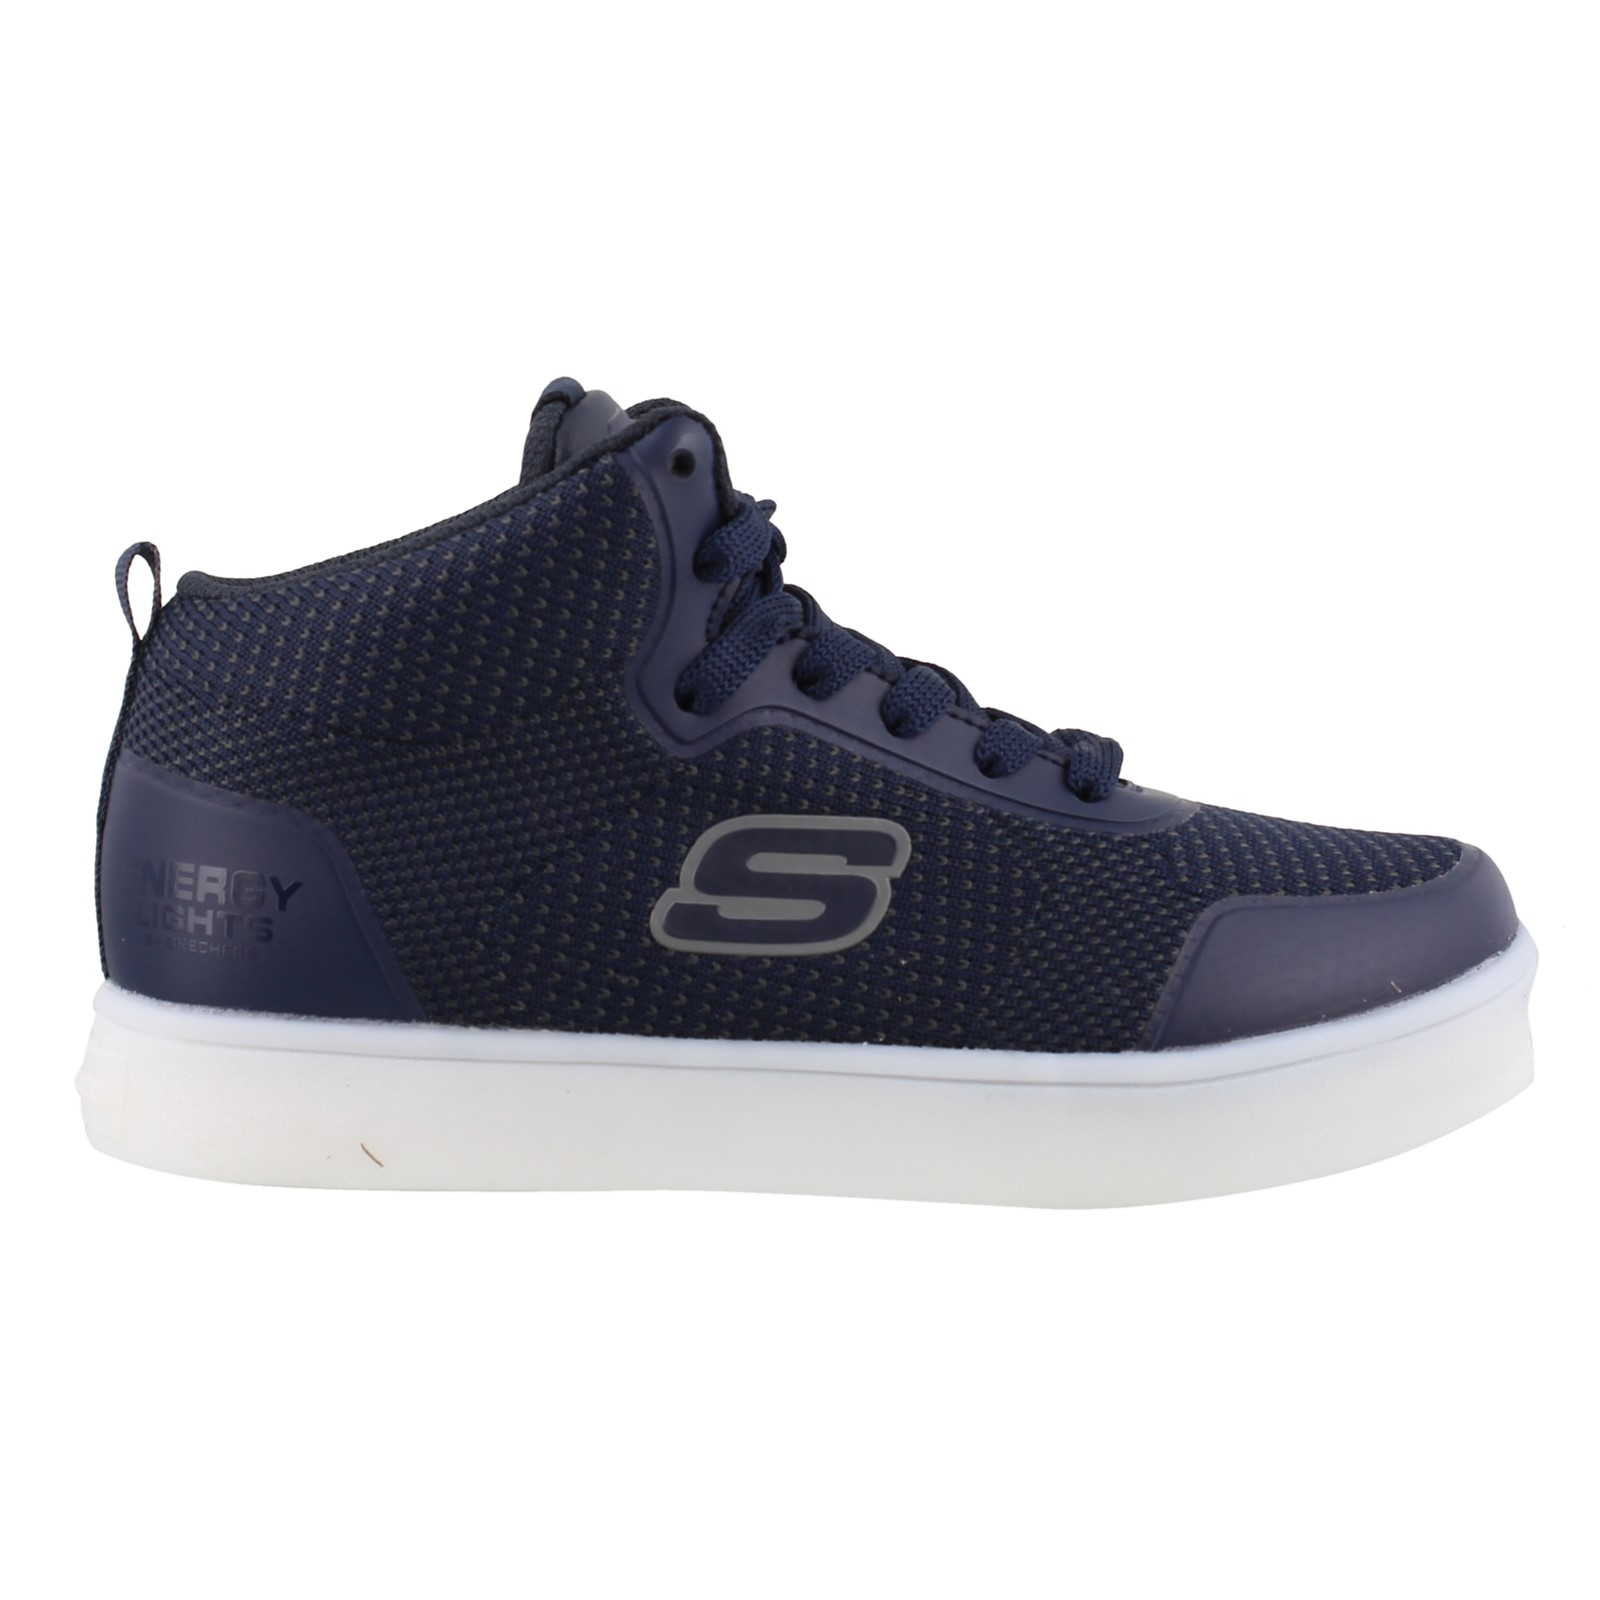 Boy's Skechers, S Lights Energy Lights Halation Sneakers